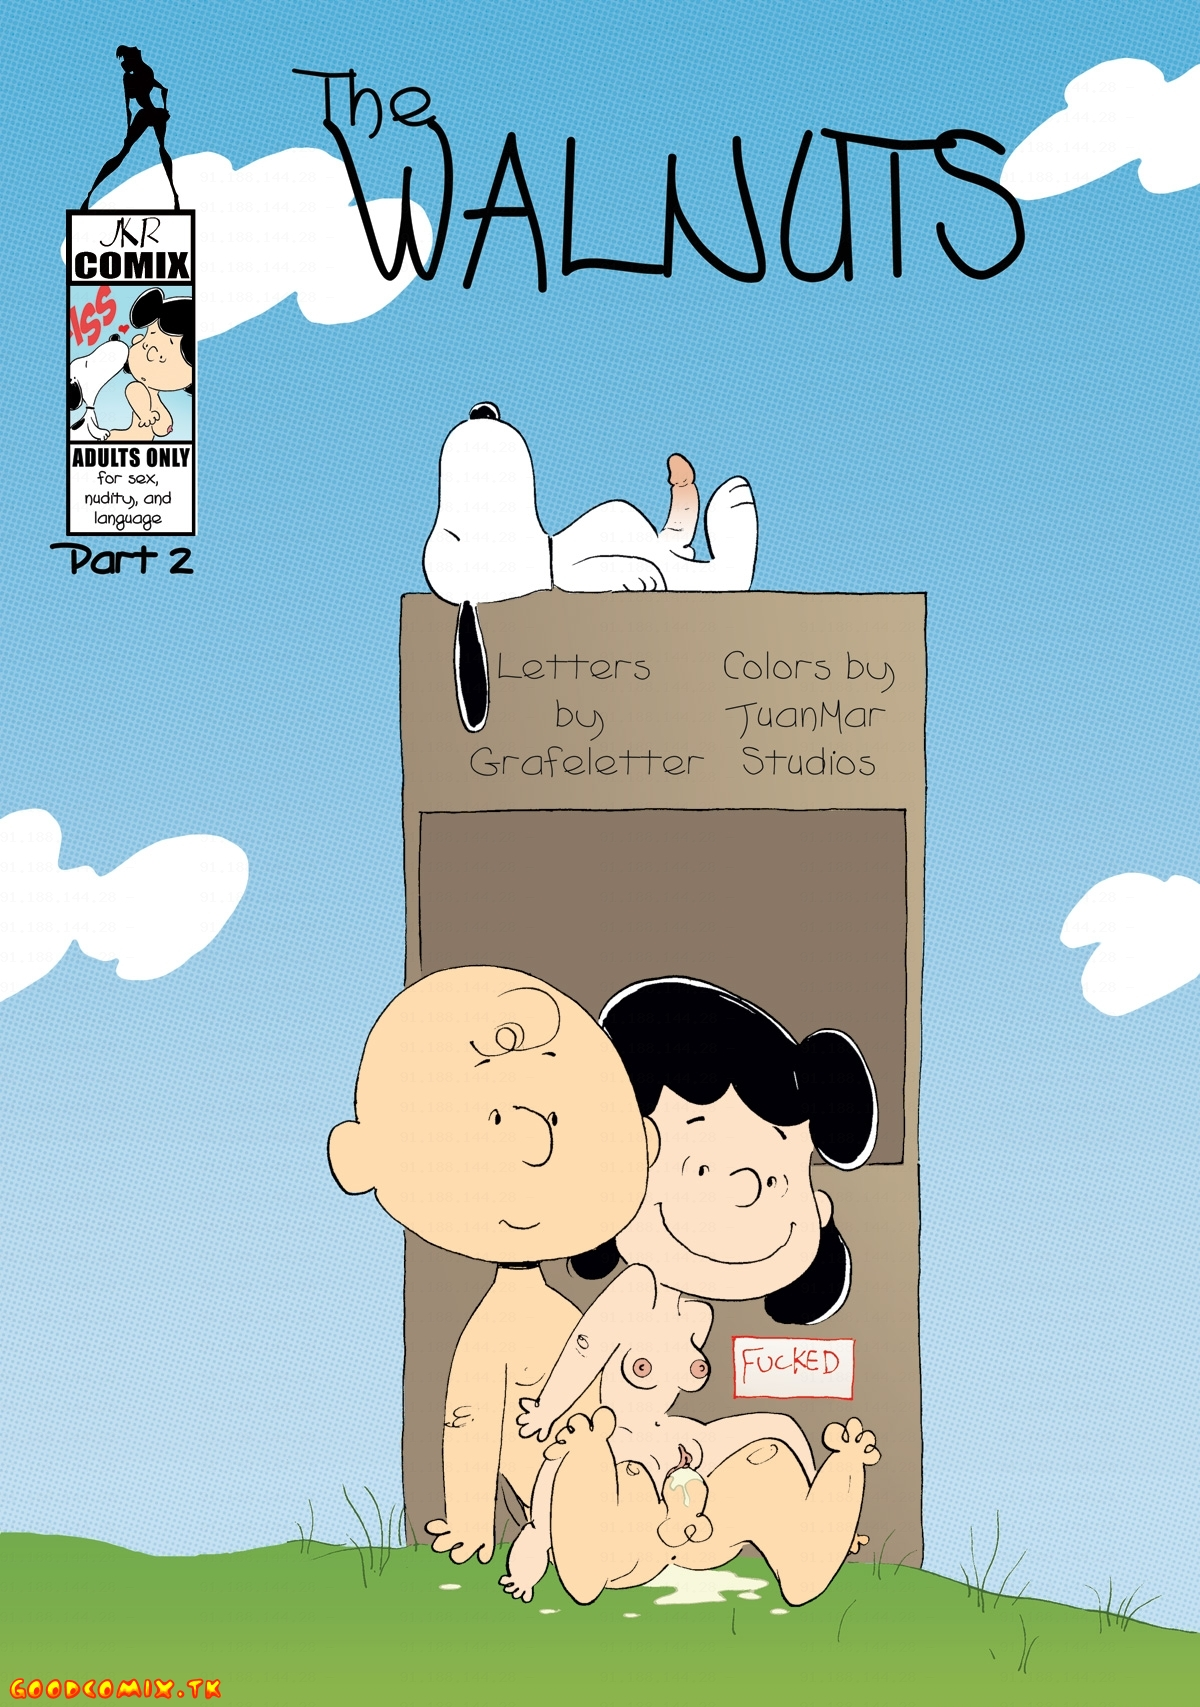 Goodcomix.tk Peanuts - [JKRcomix] - The Walnuts Part2